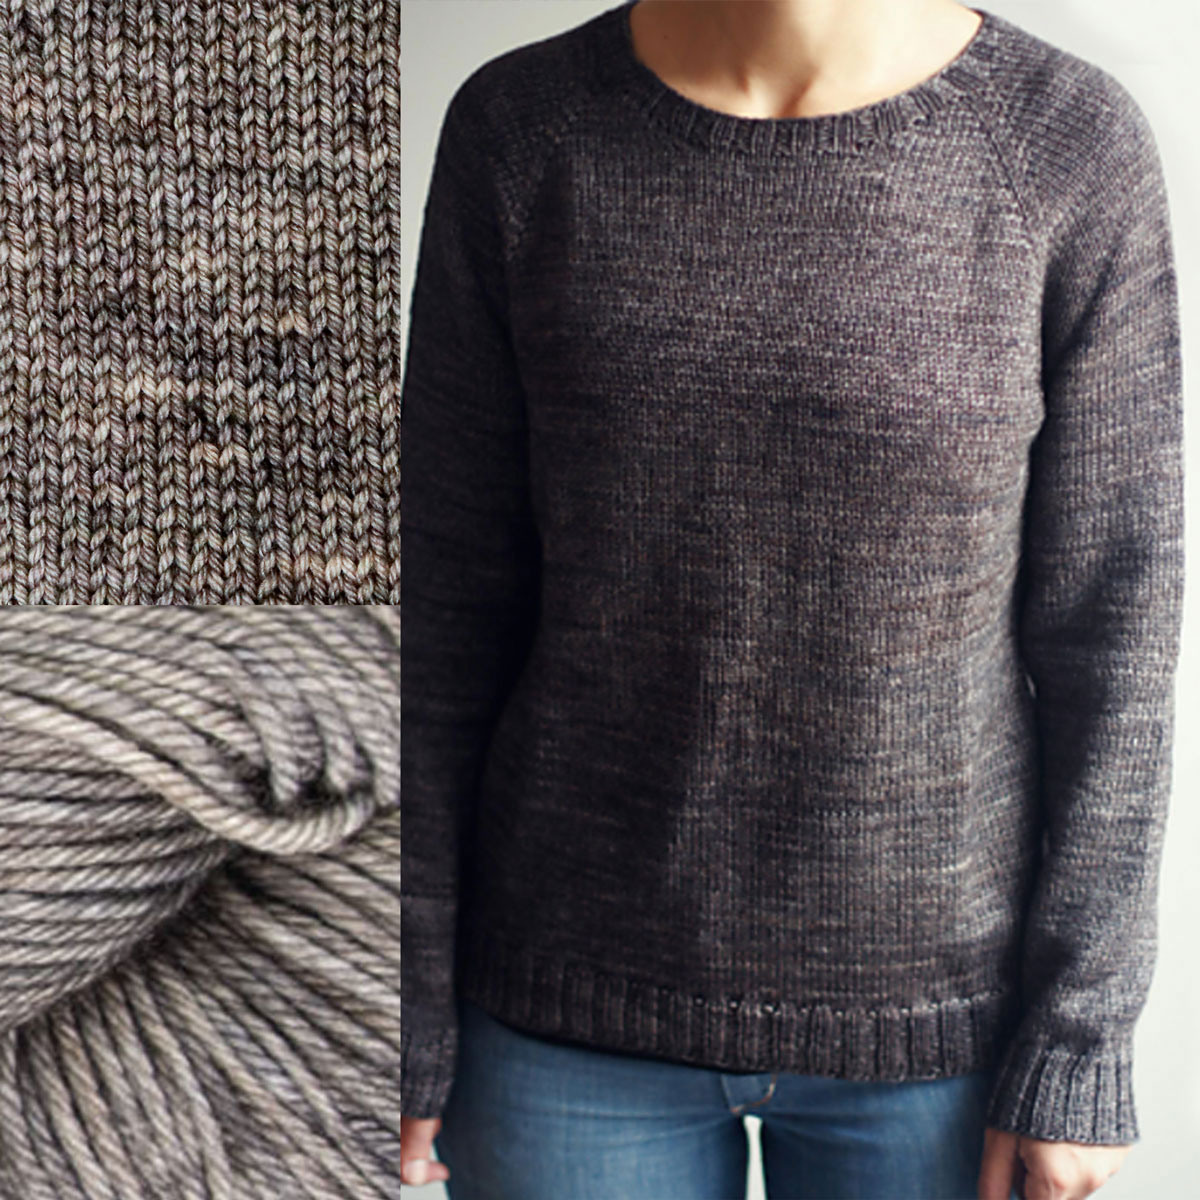 Madelinetosh Sweater Club - Portal